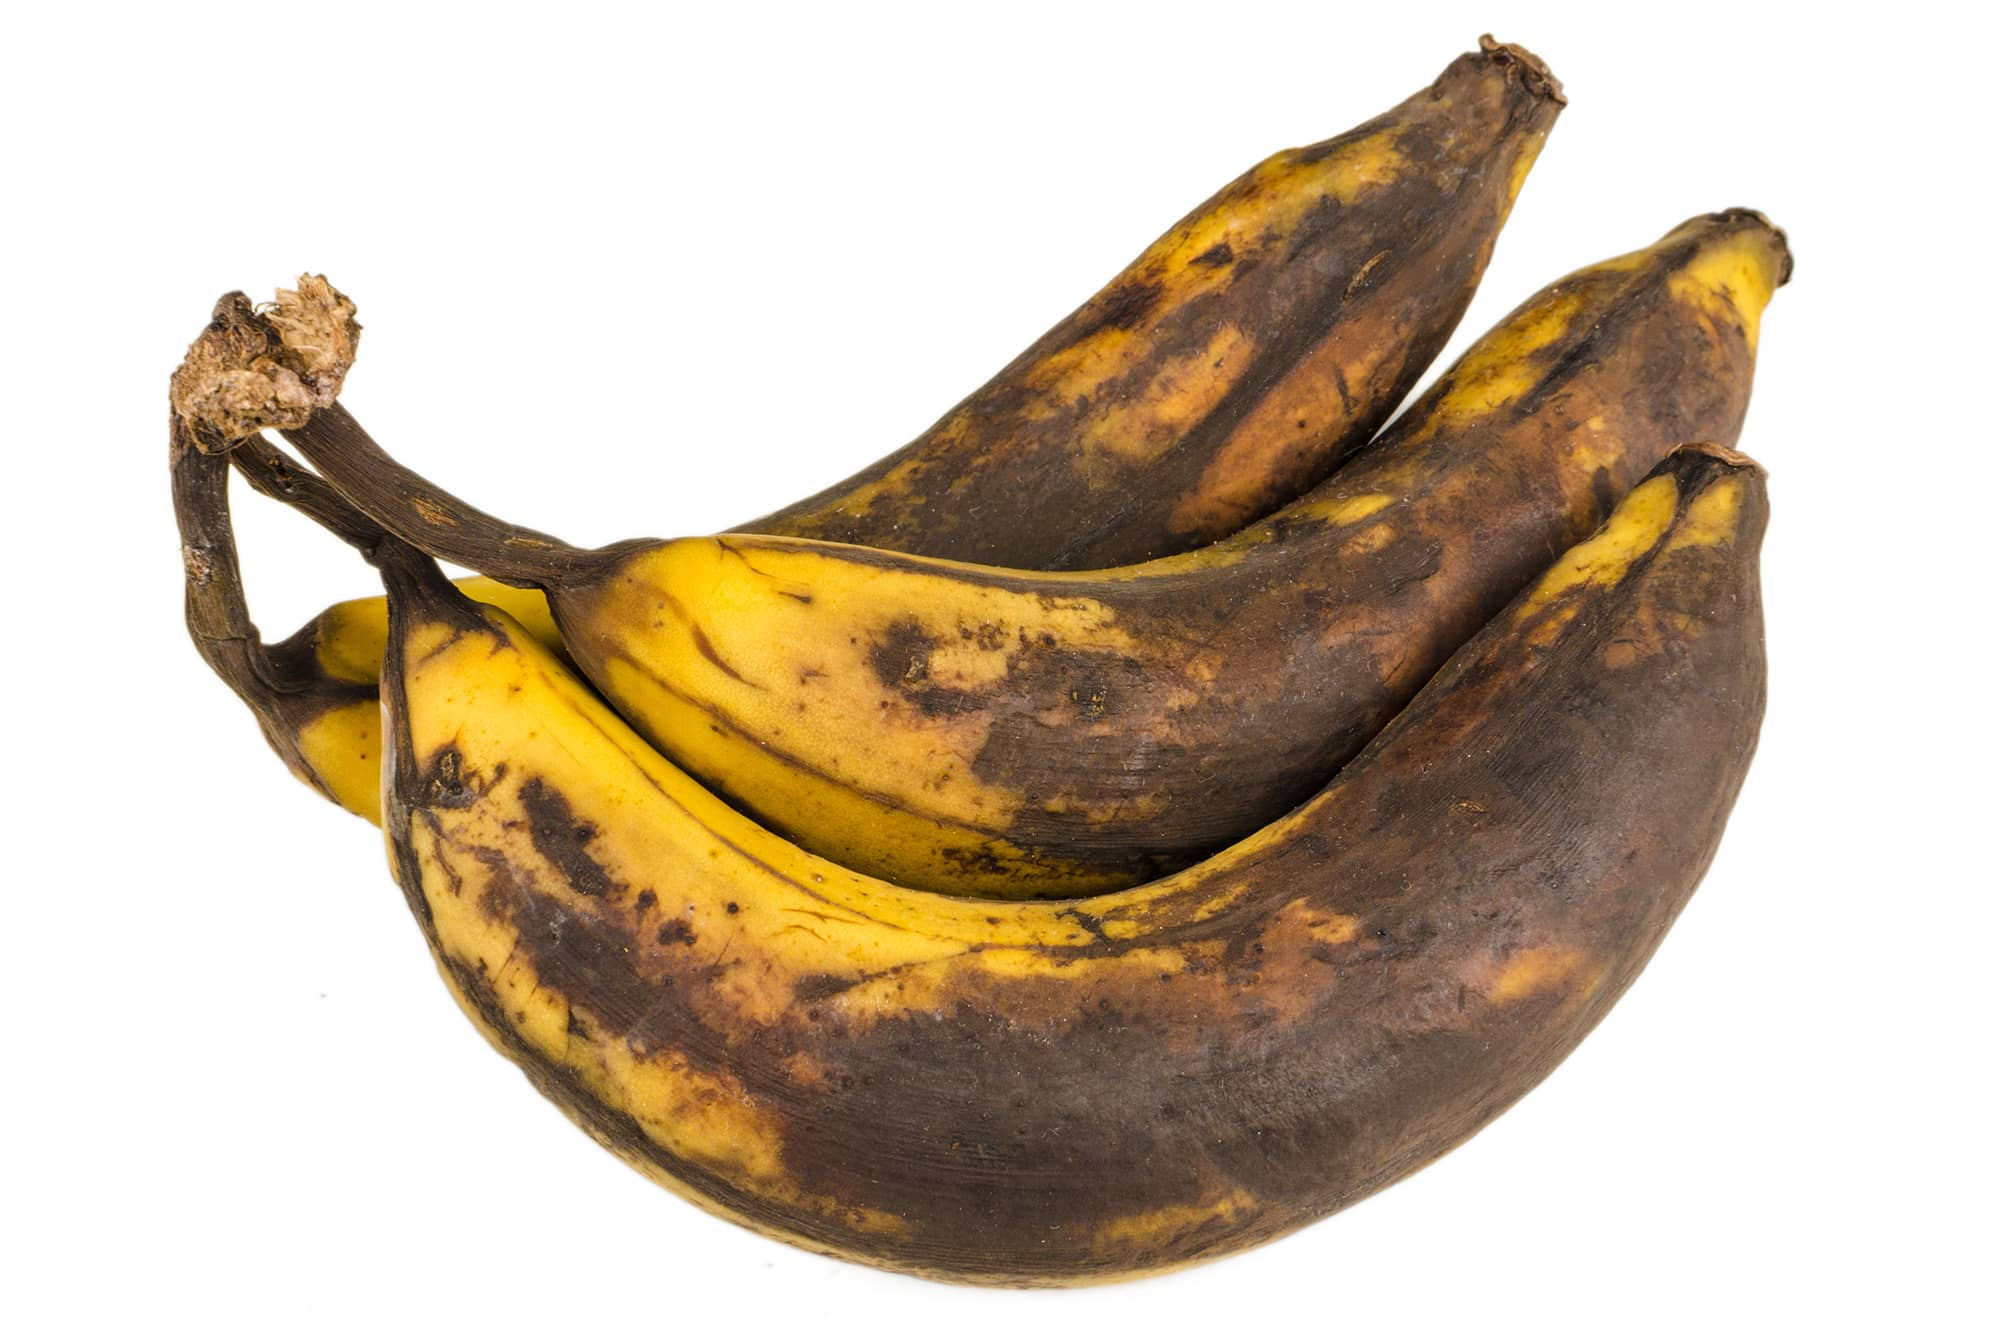 Example of food waste - over ripe bananas